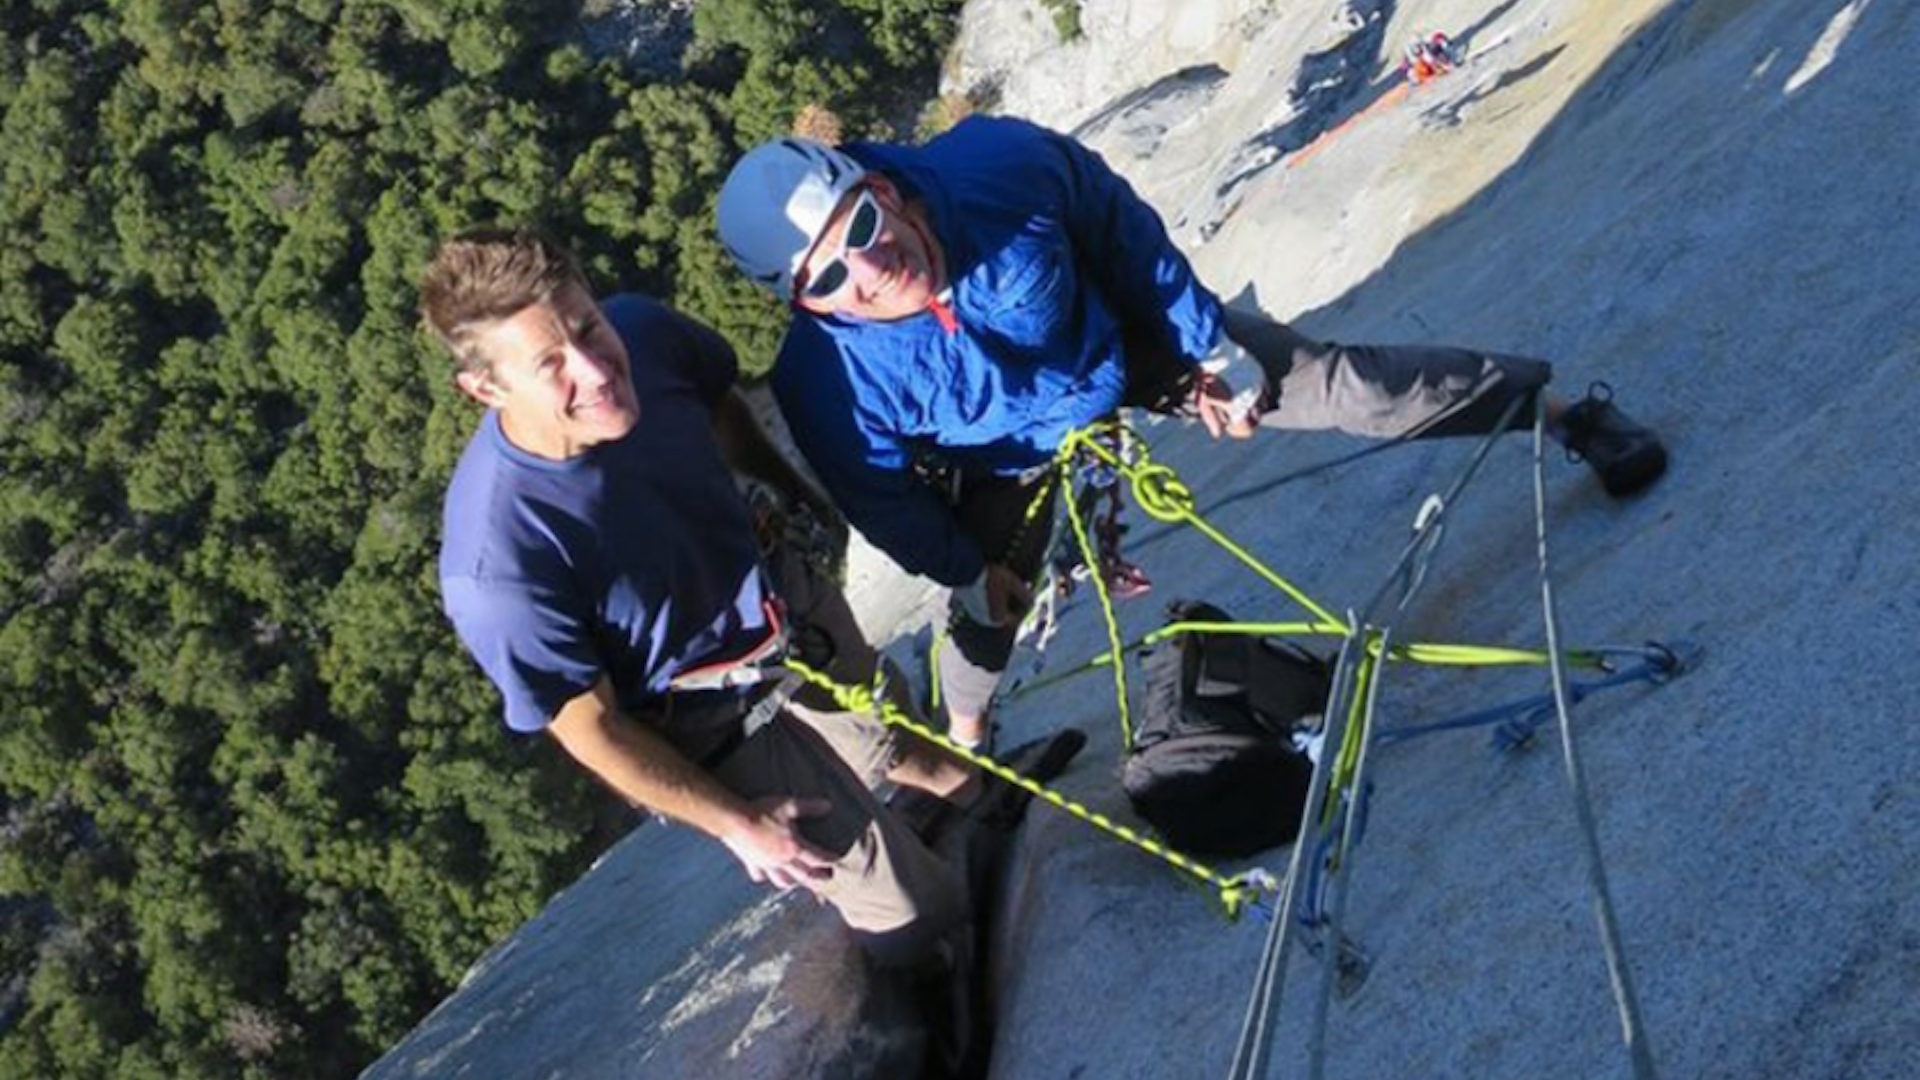 Two expert climbers die after falling from Yosemite's El Capitan